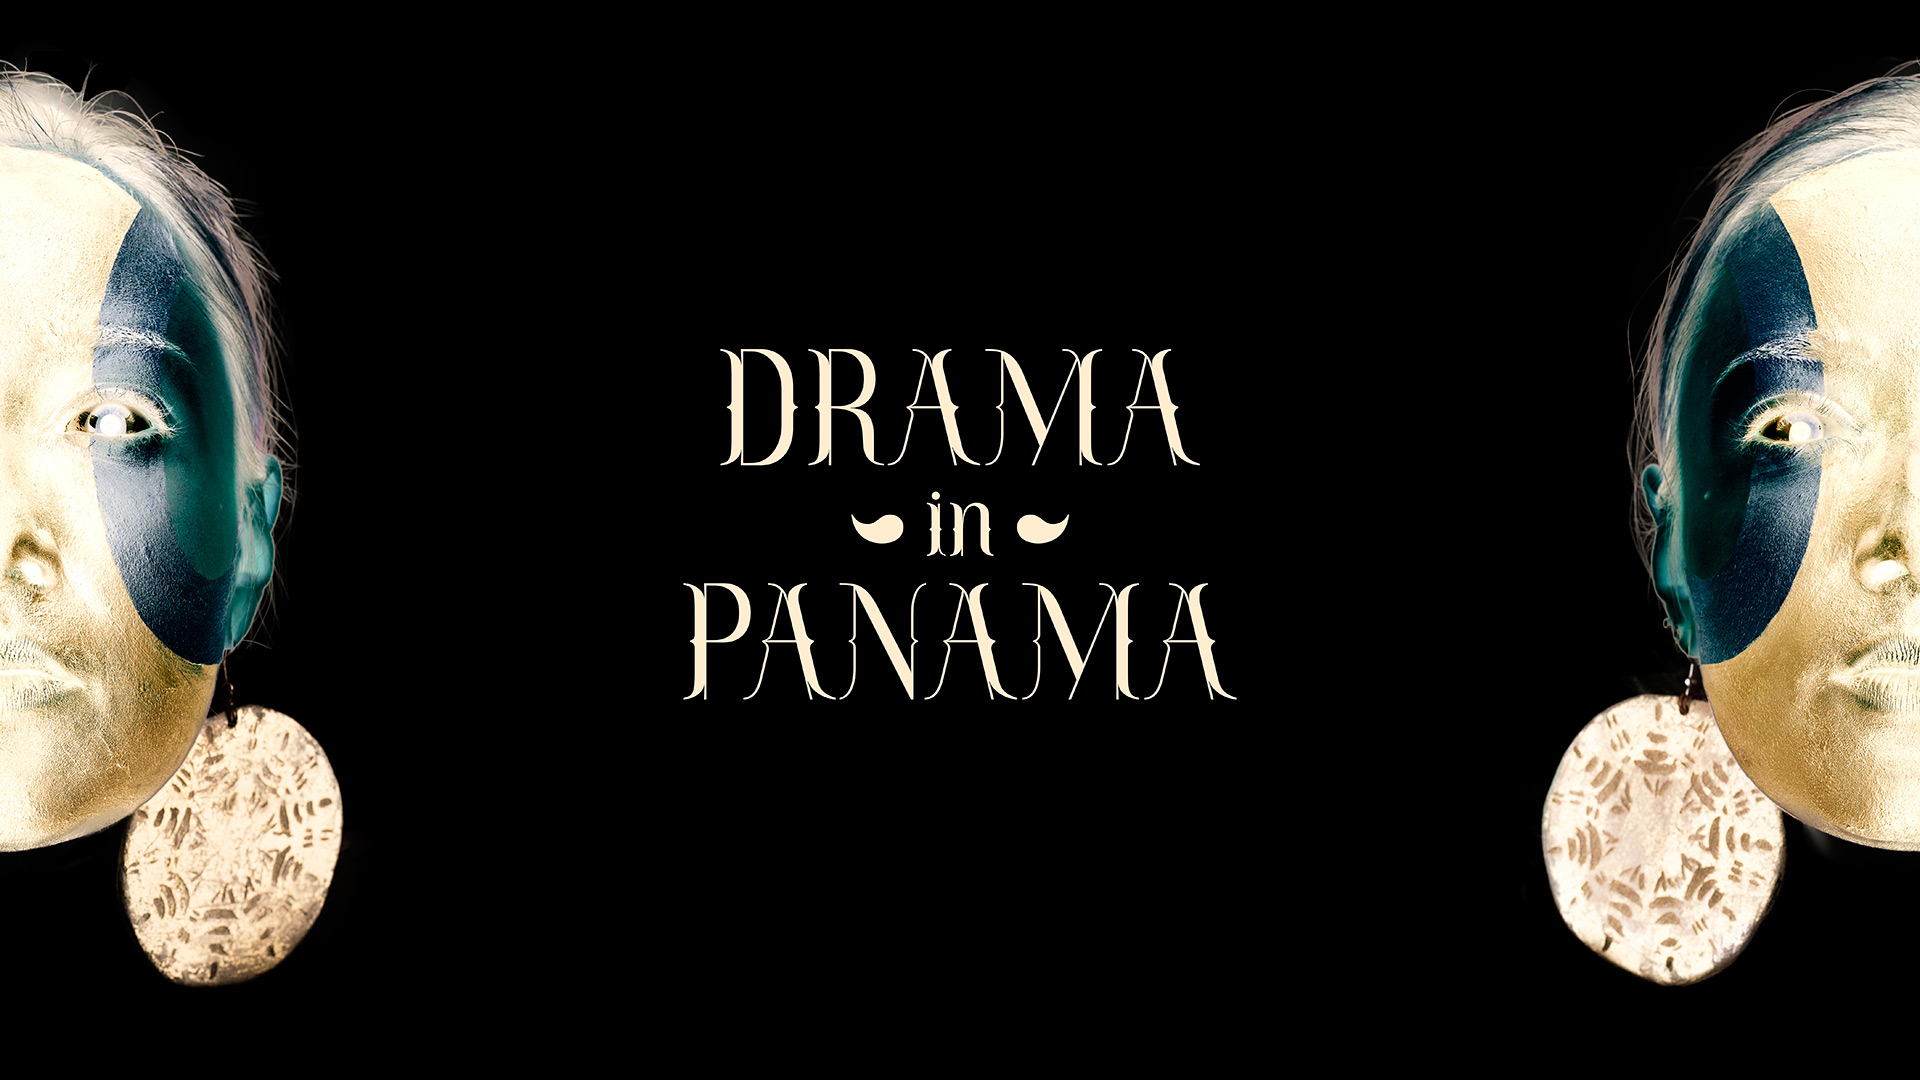 Fresh and Plot in the First Bulgarian Interactive Web Series Drama in Panama (Trailer)